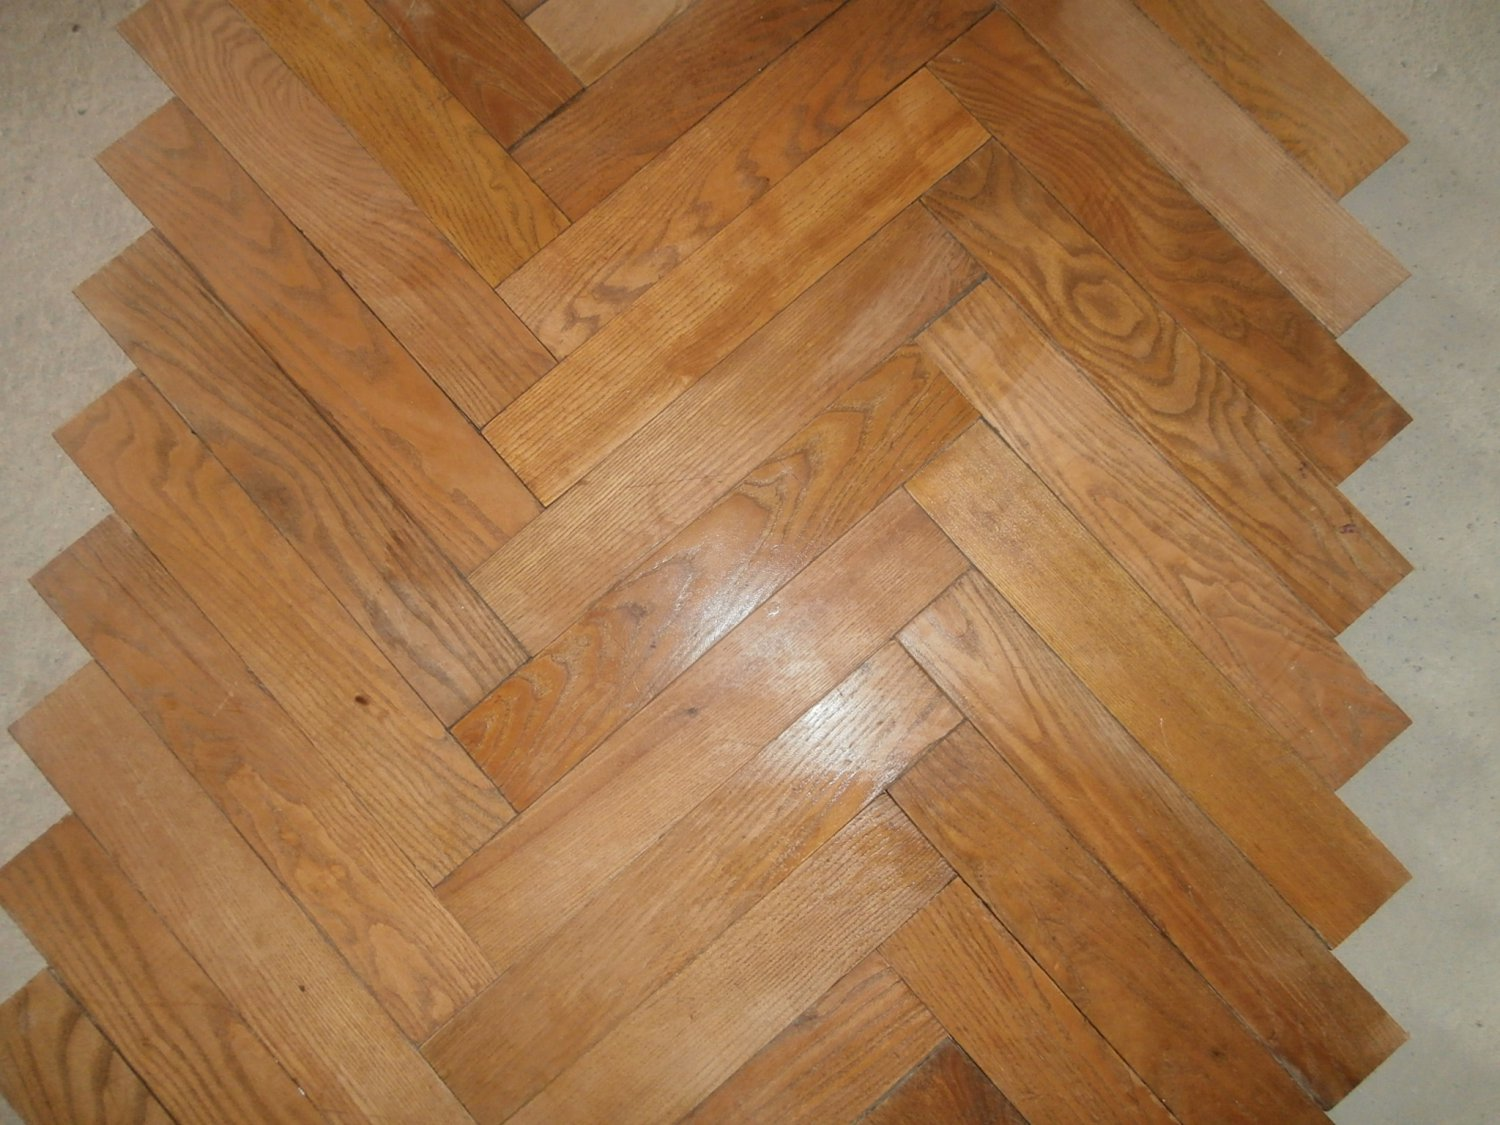 1 Really old french solid oak parquet flooring